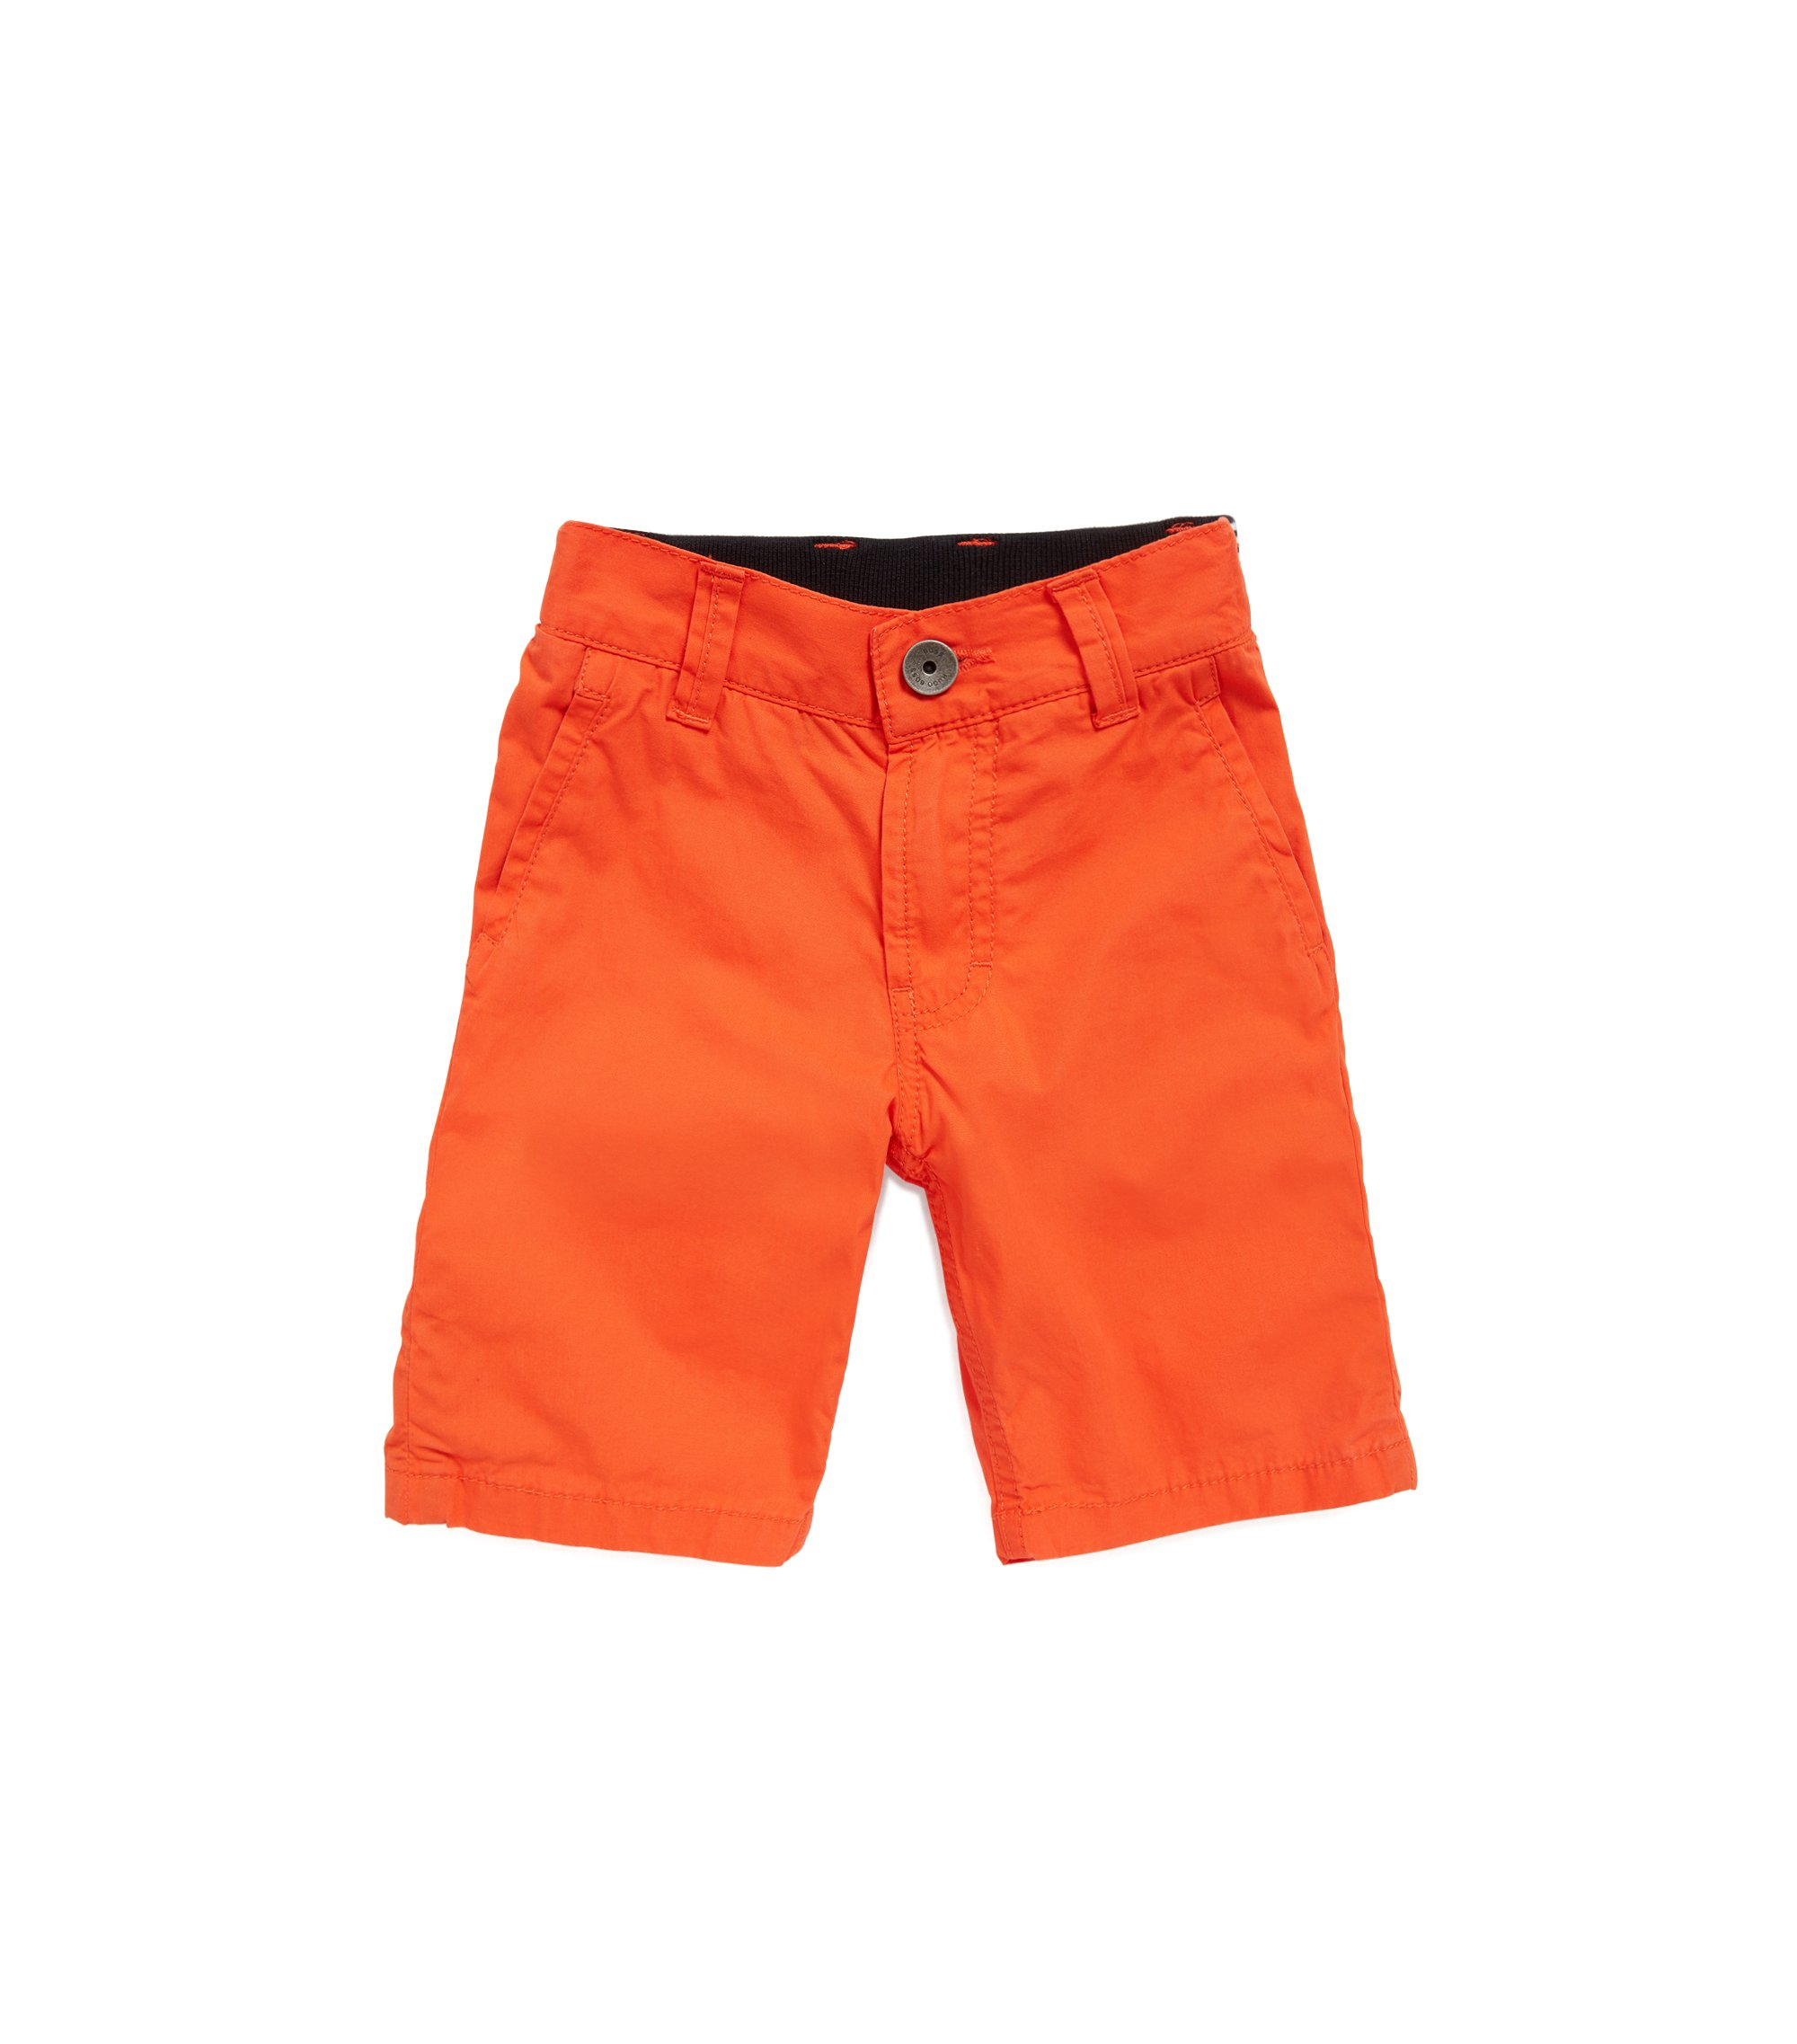 Kids' cotton shorts with striped back waistband, Orange